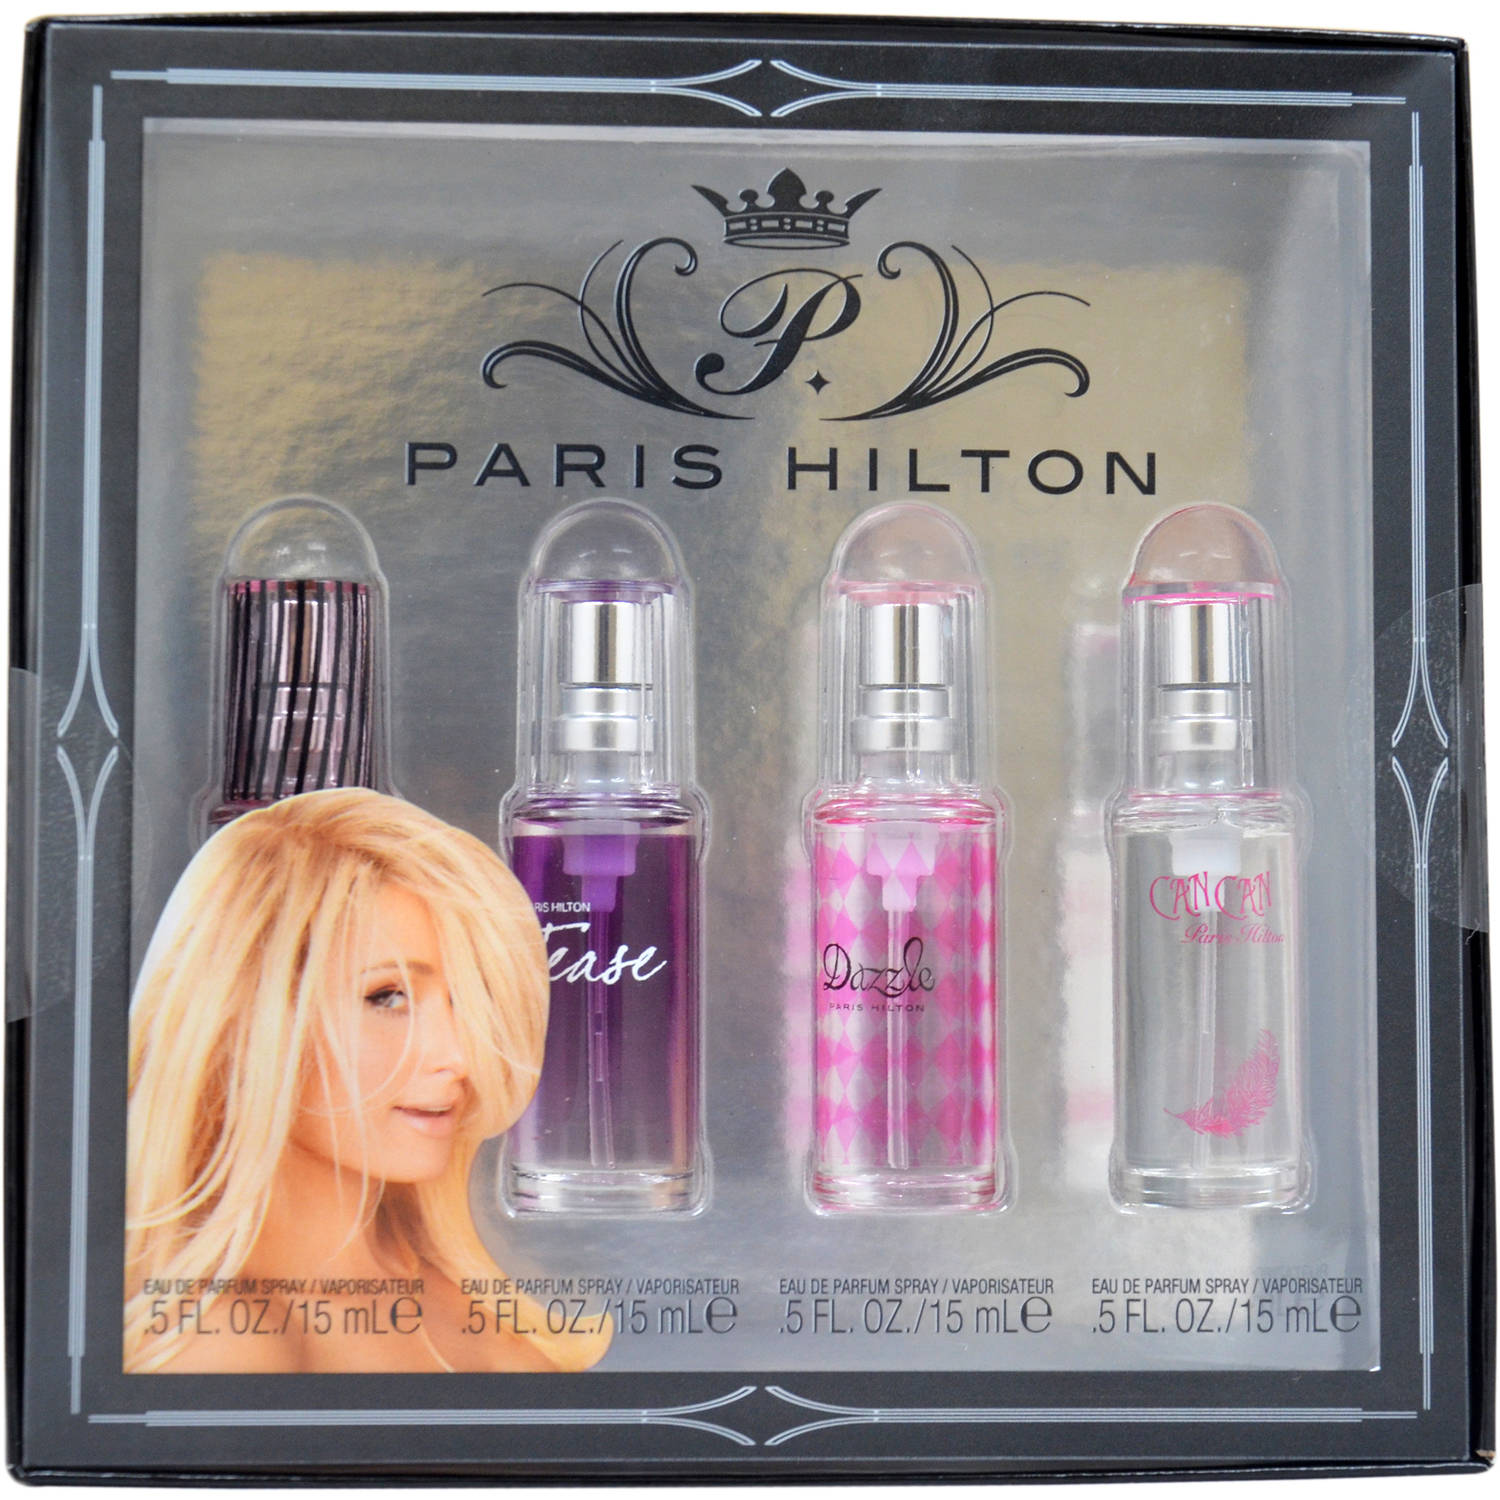 Paris Hilton Paris Hilton Variety for Women, Mini Gift Set, 4 pc